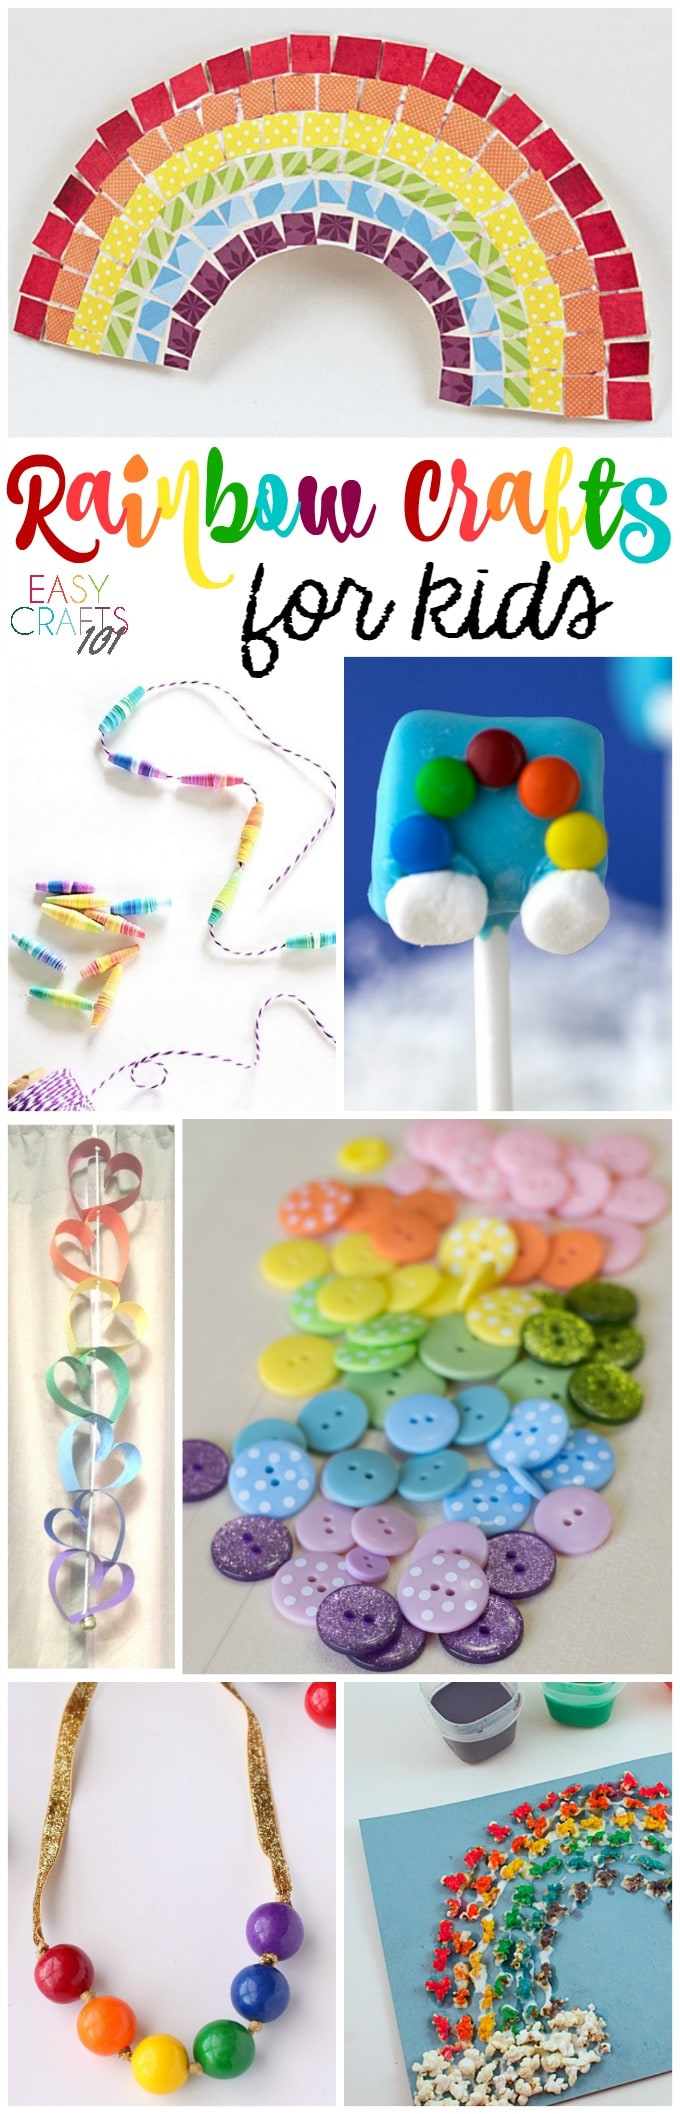 Easy-Rainbow-Crafts-for-Kids